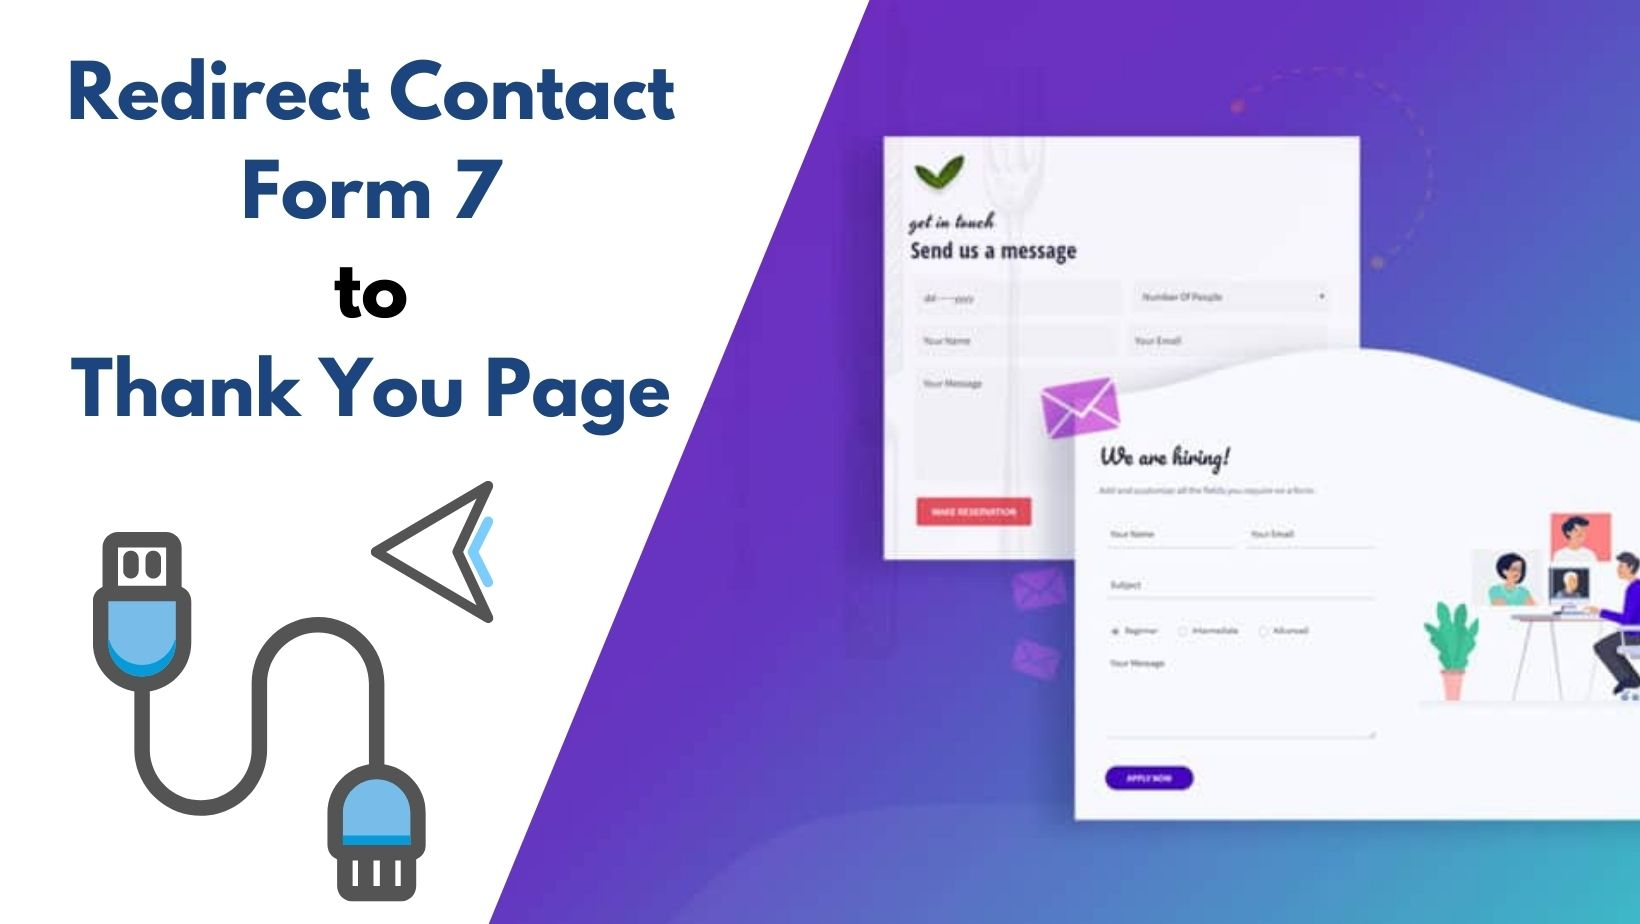 Contact form 7 to thank you page redirection